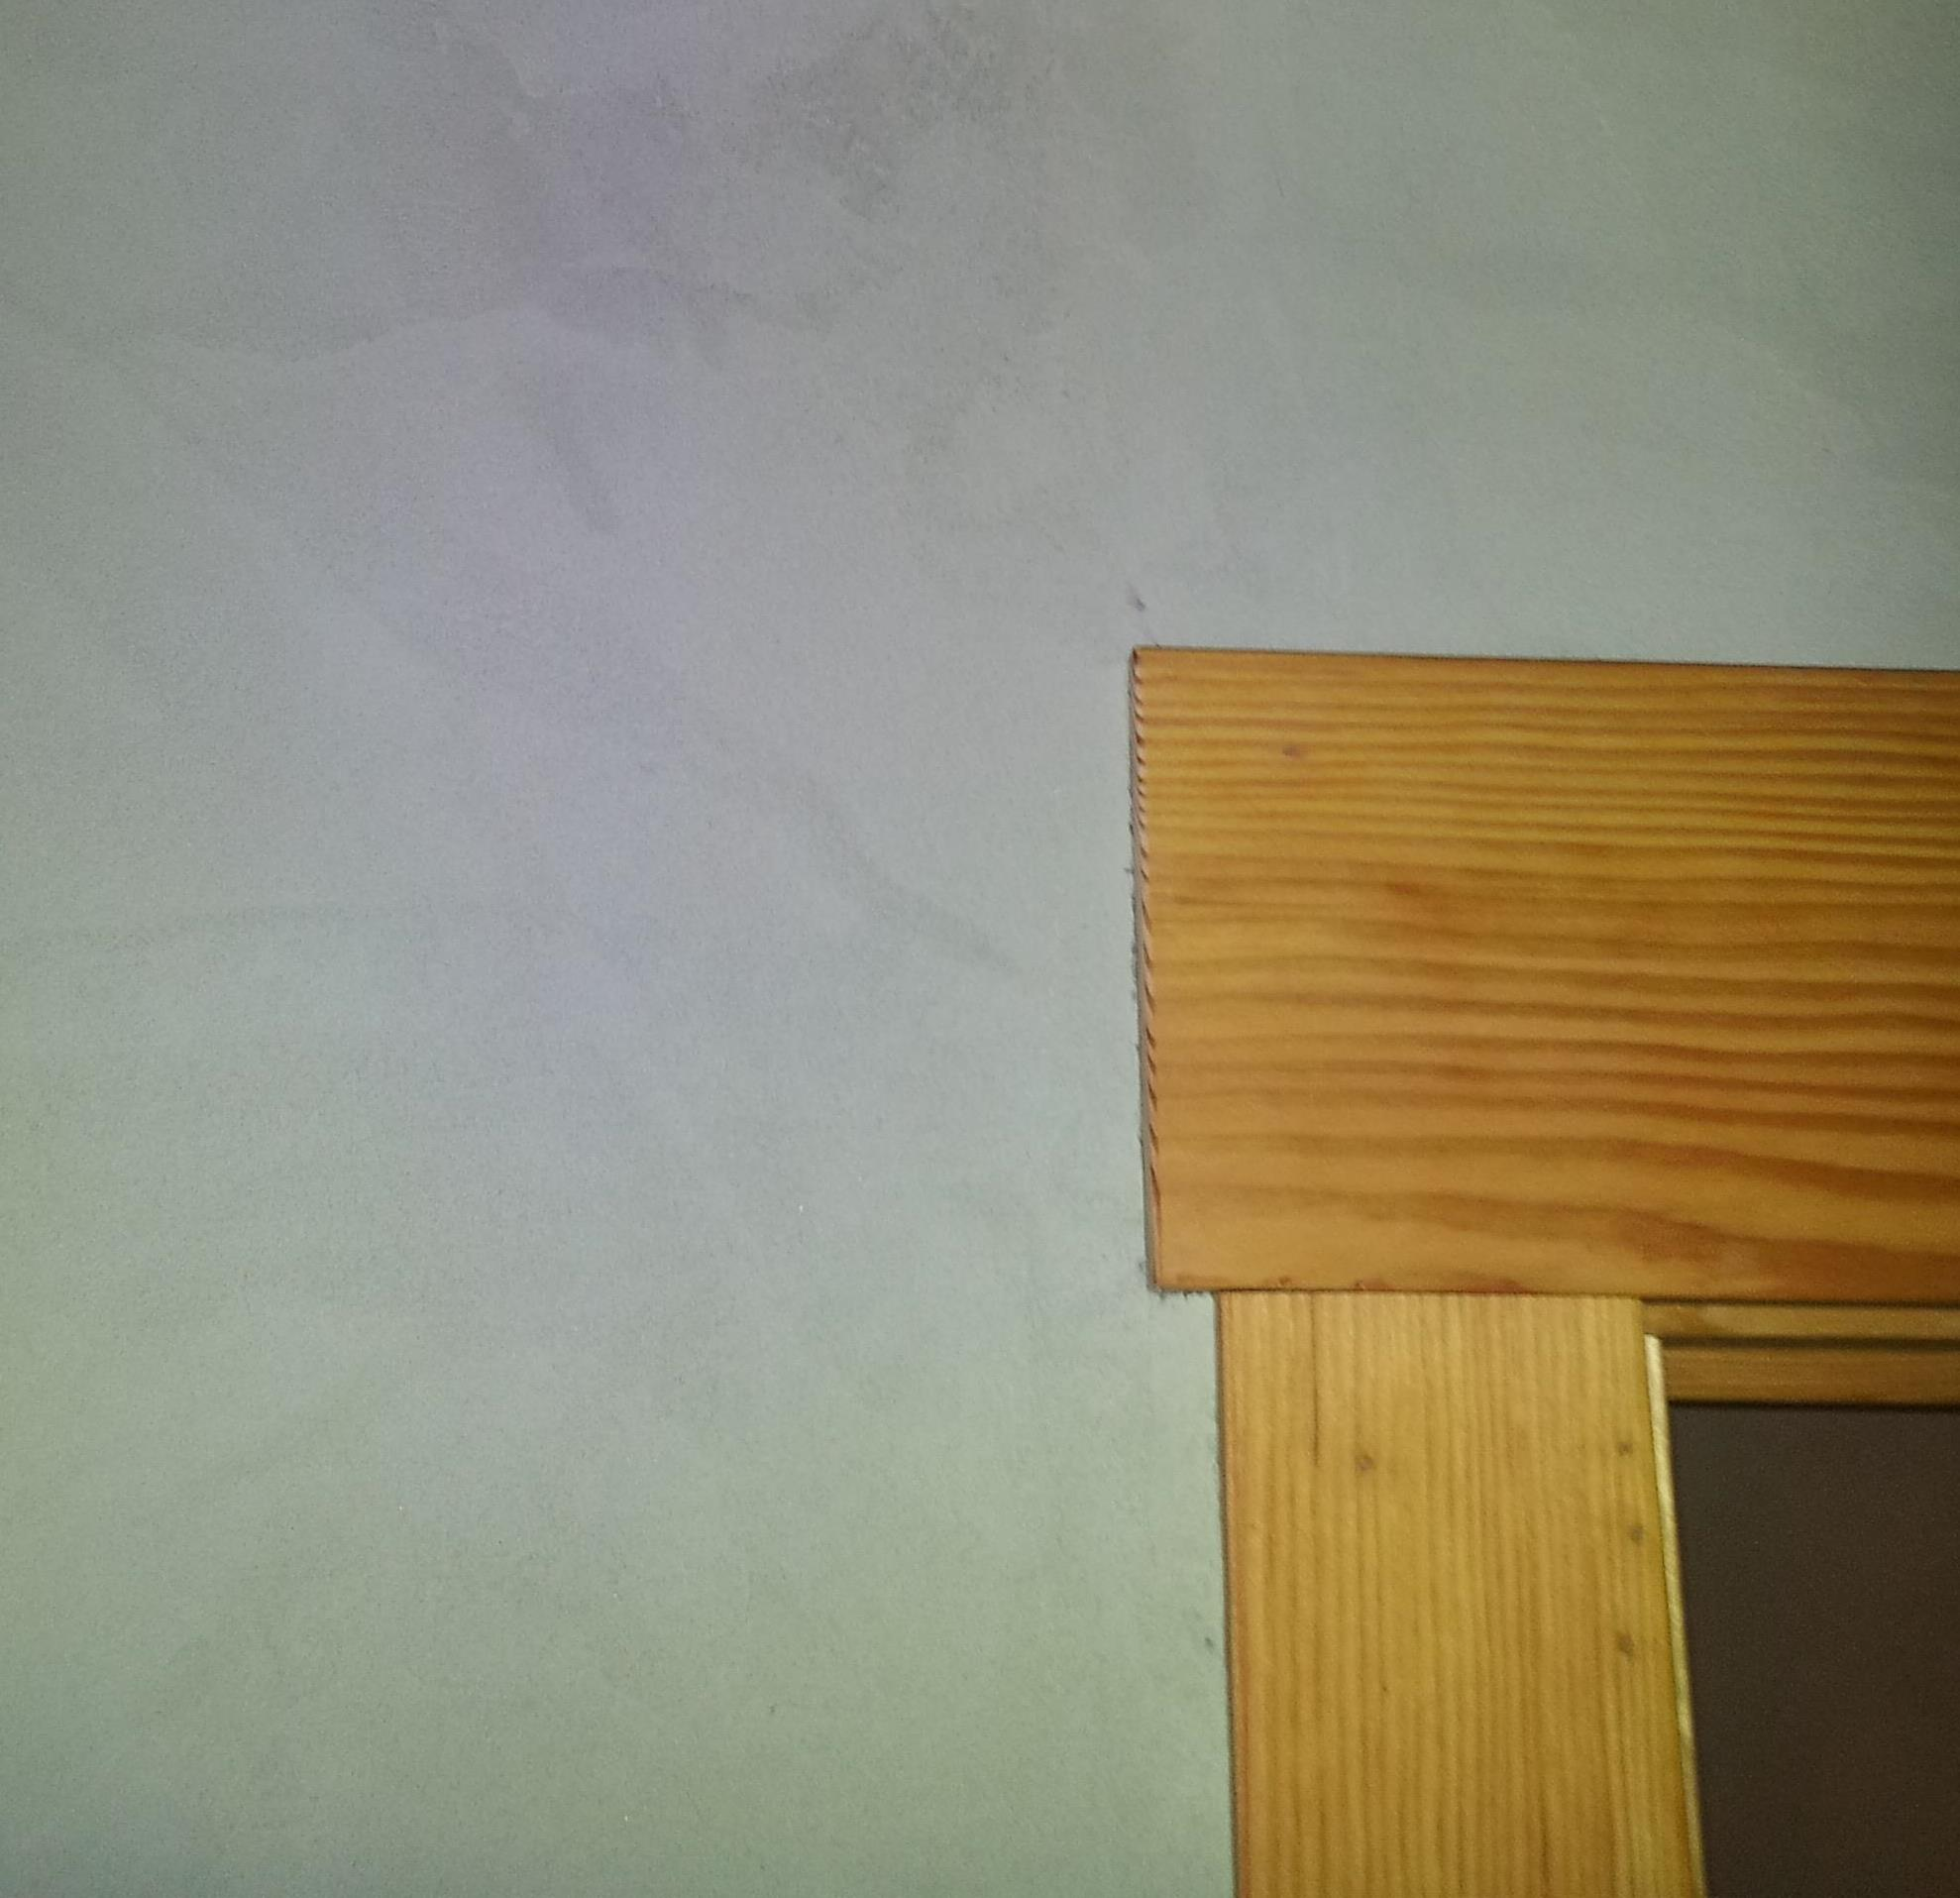 clay plaster over earth over drywall 1.jpg